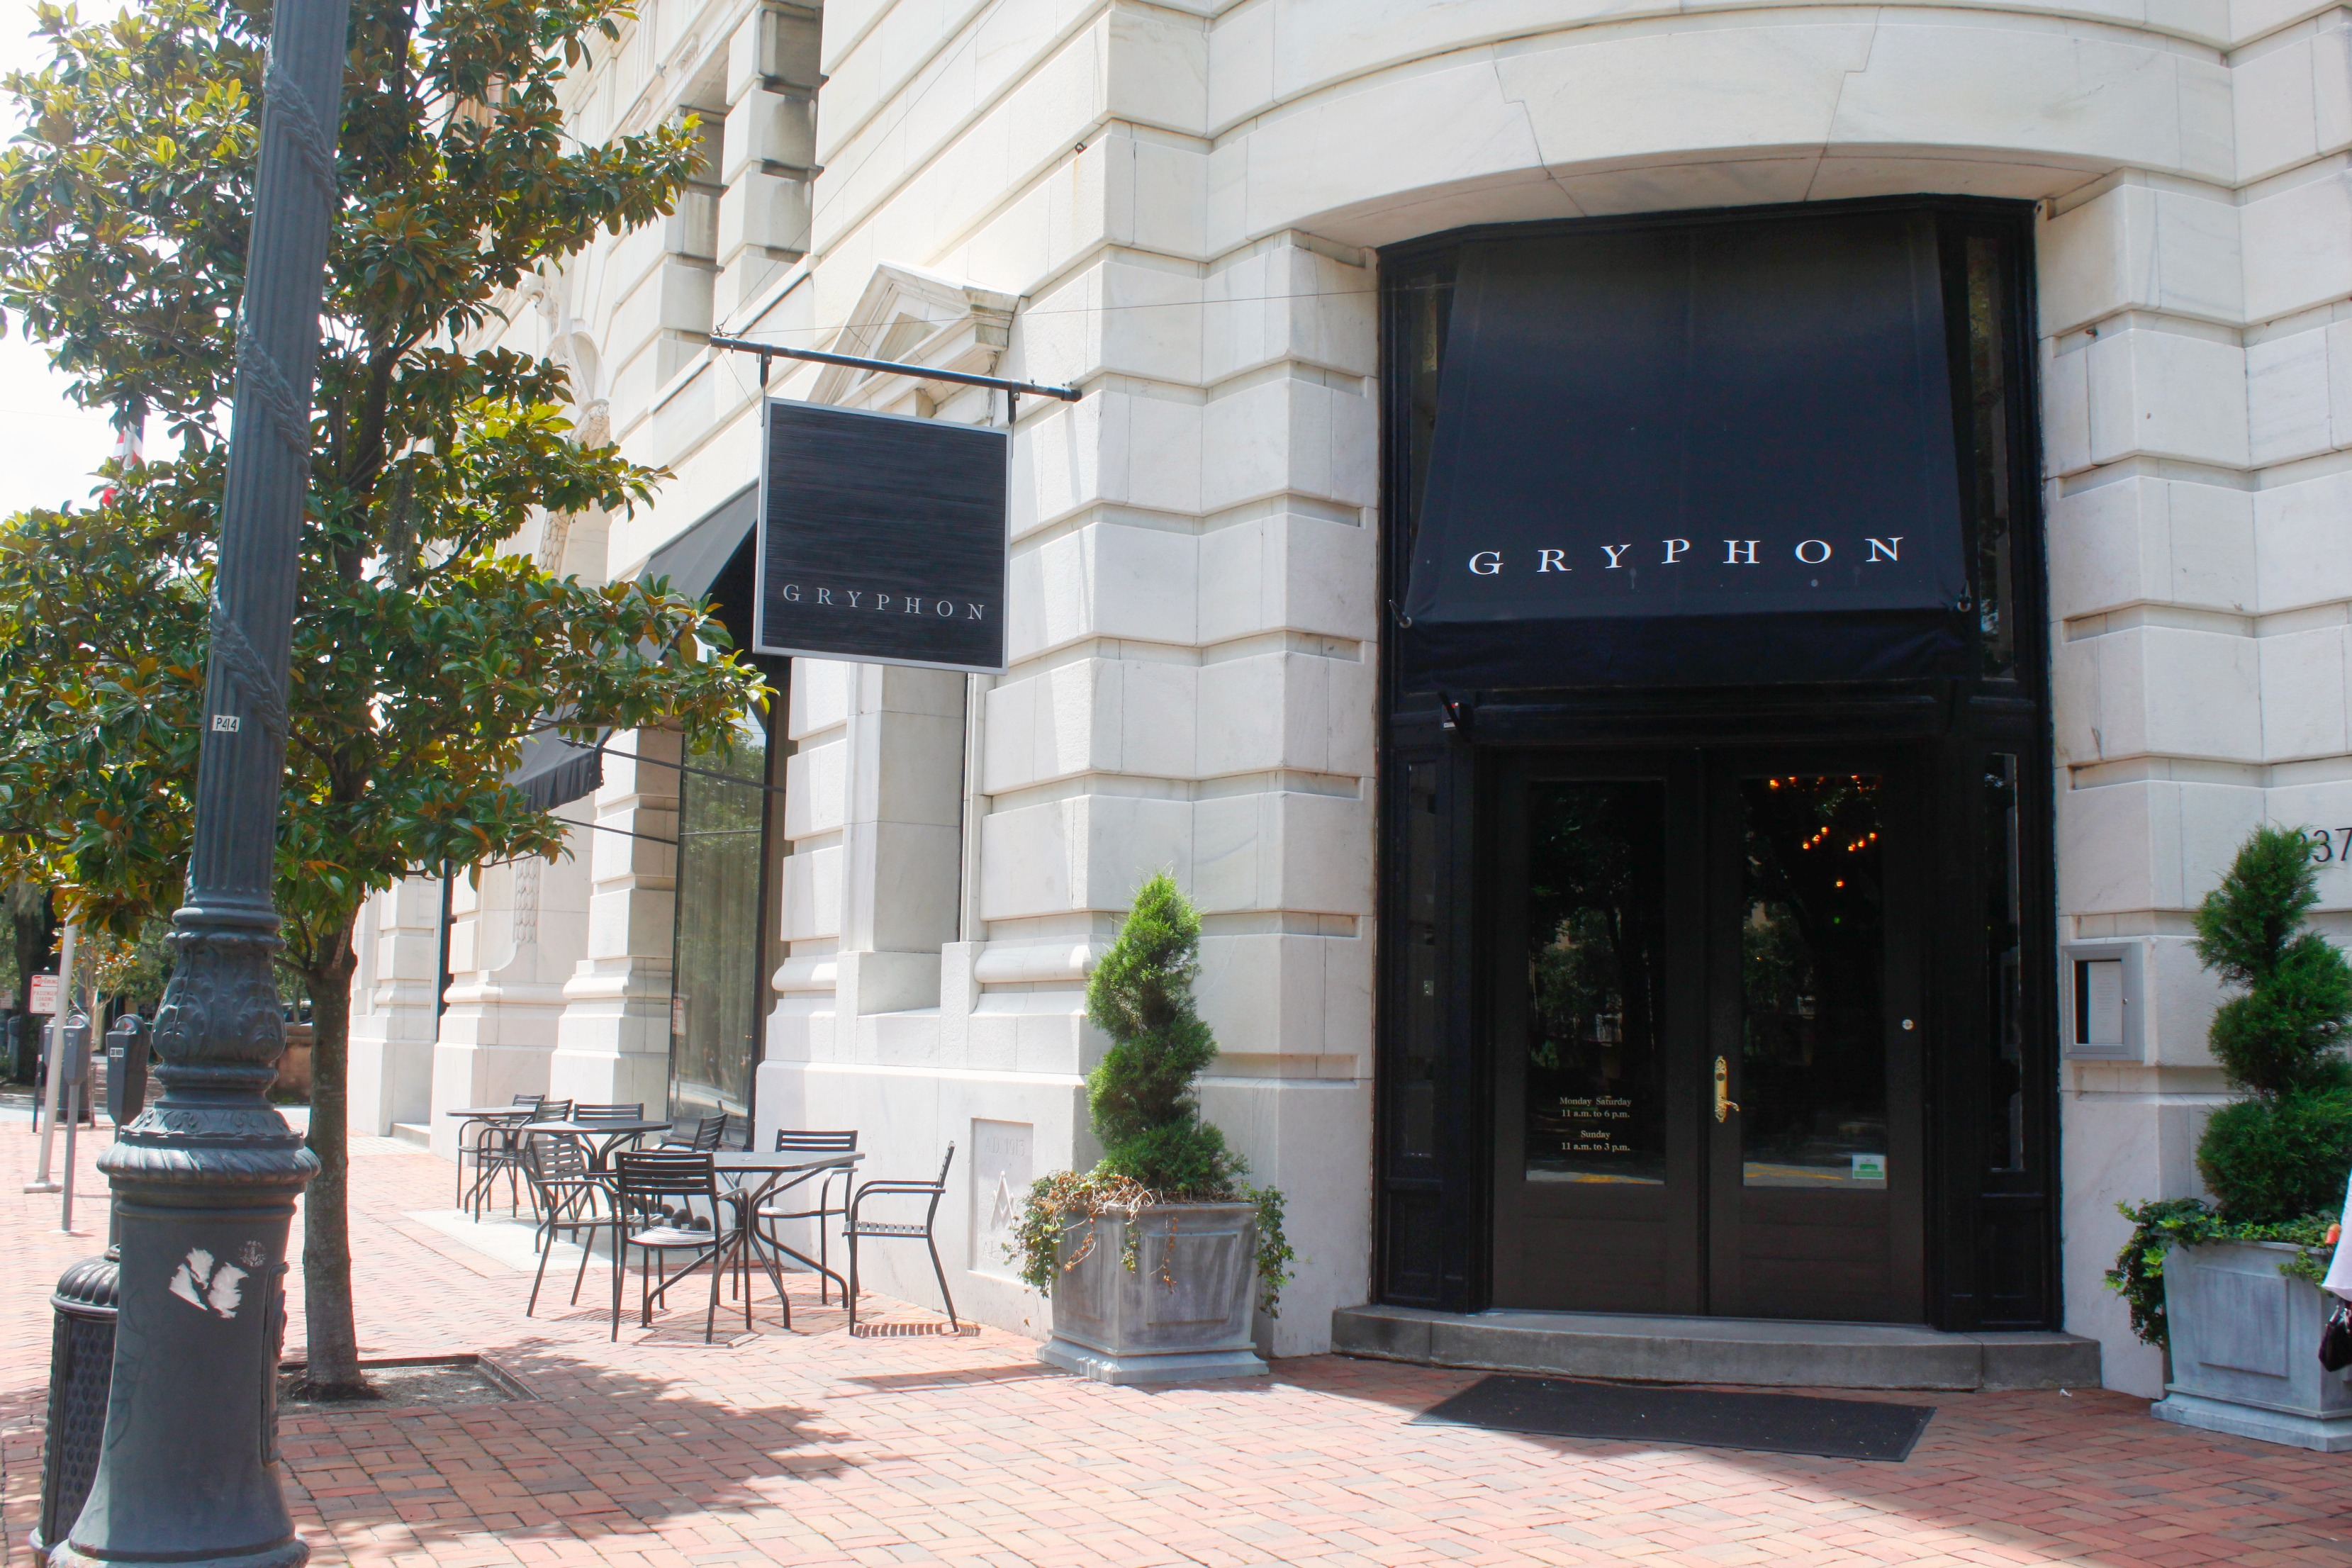 Gryphon Tea Room Bull Street Savannah Ga